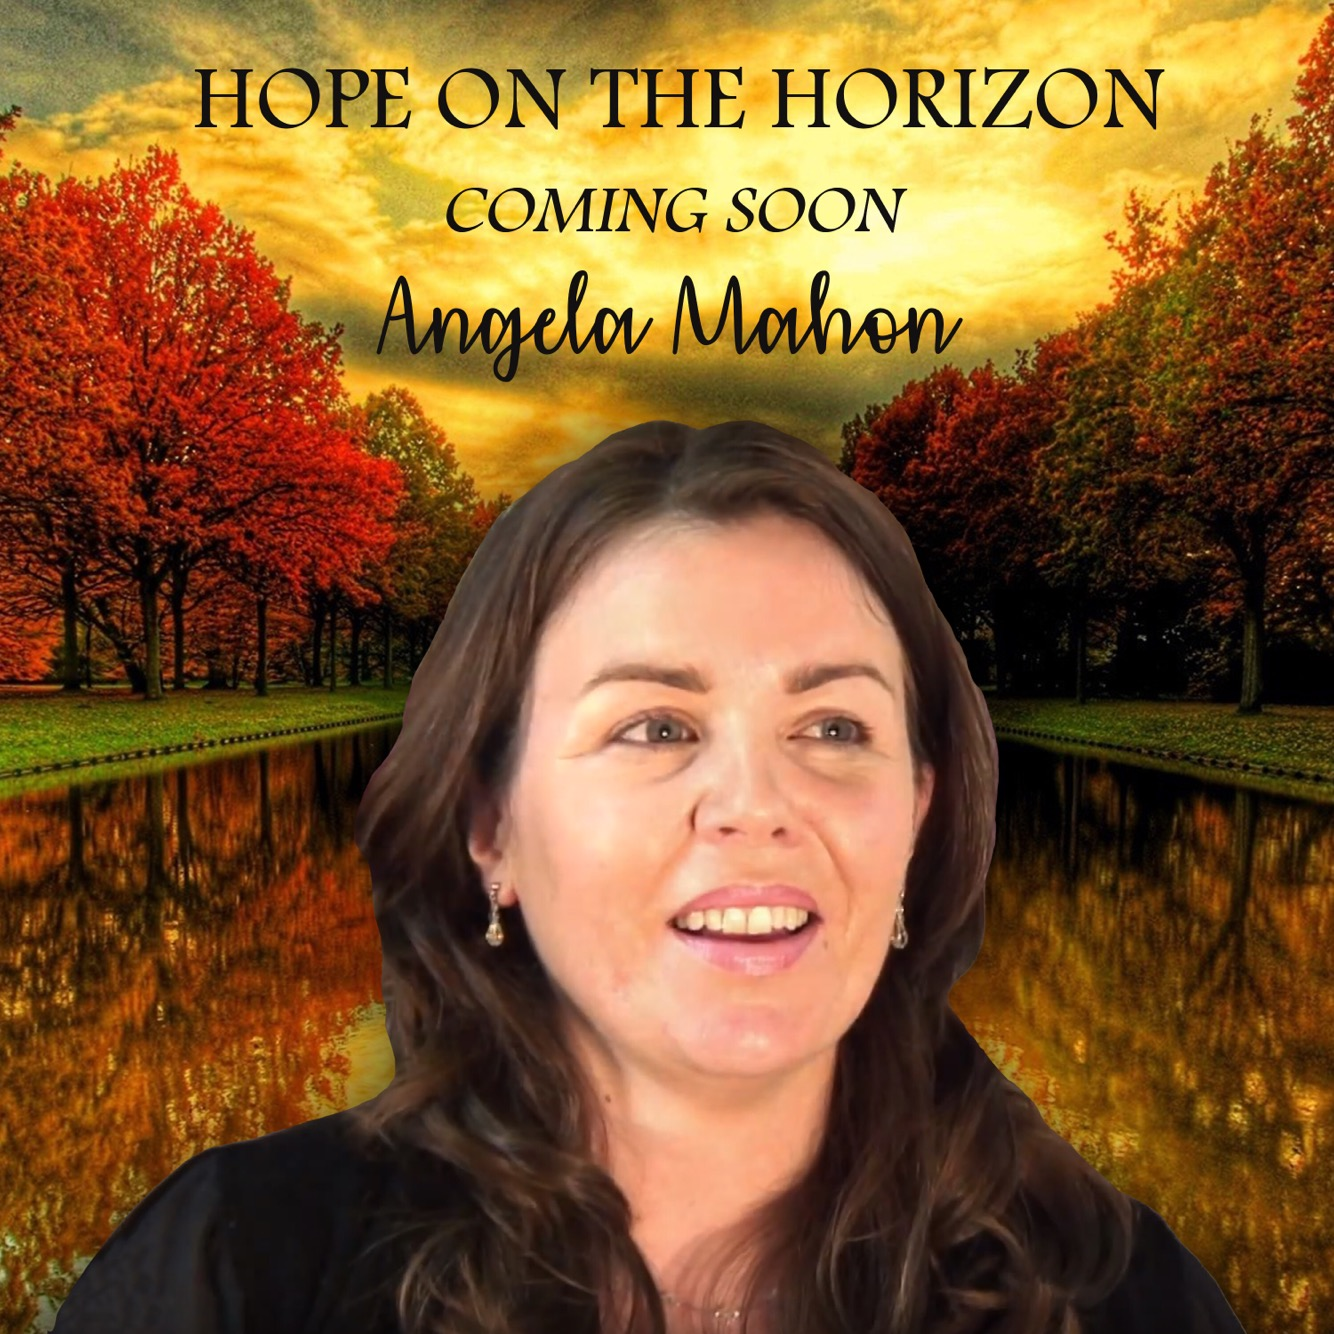 Hope on the Horizon - Christian Music